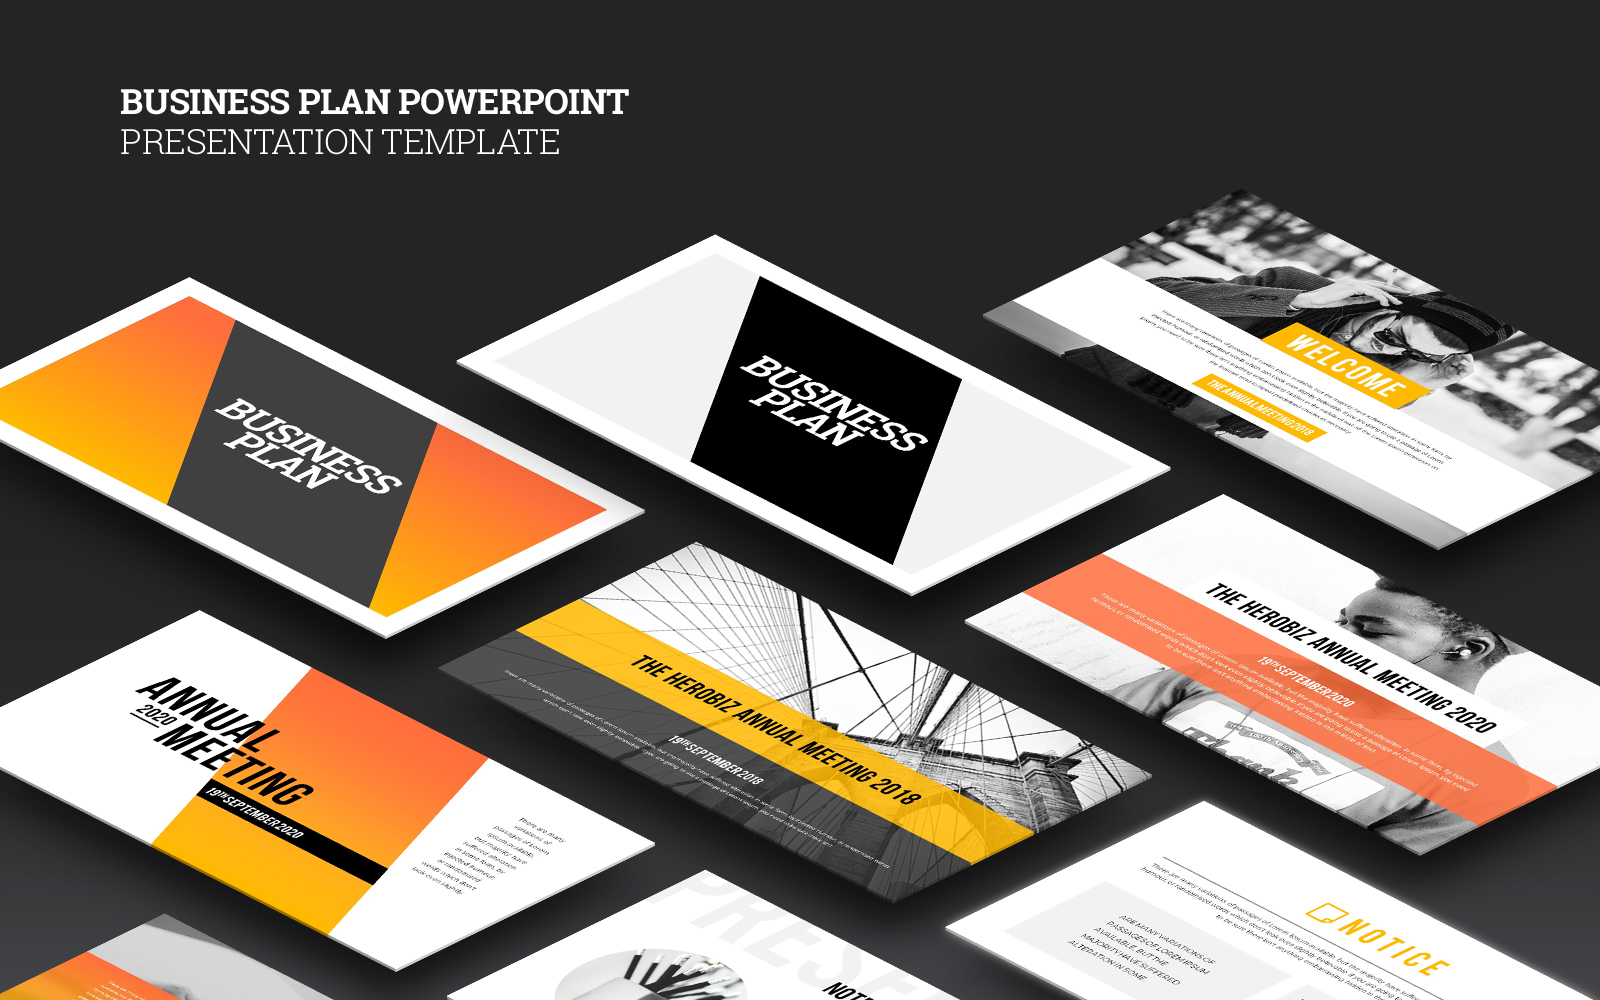 Business Plan Presentation PowerPoint sablon 126362